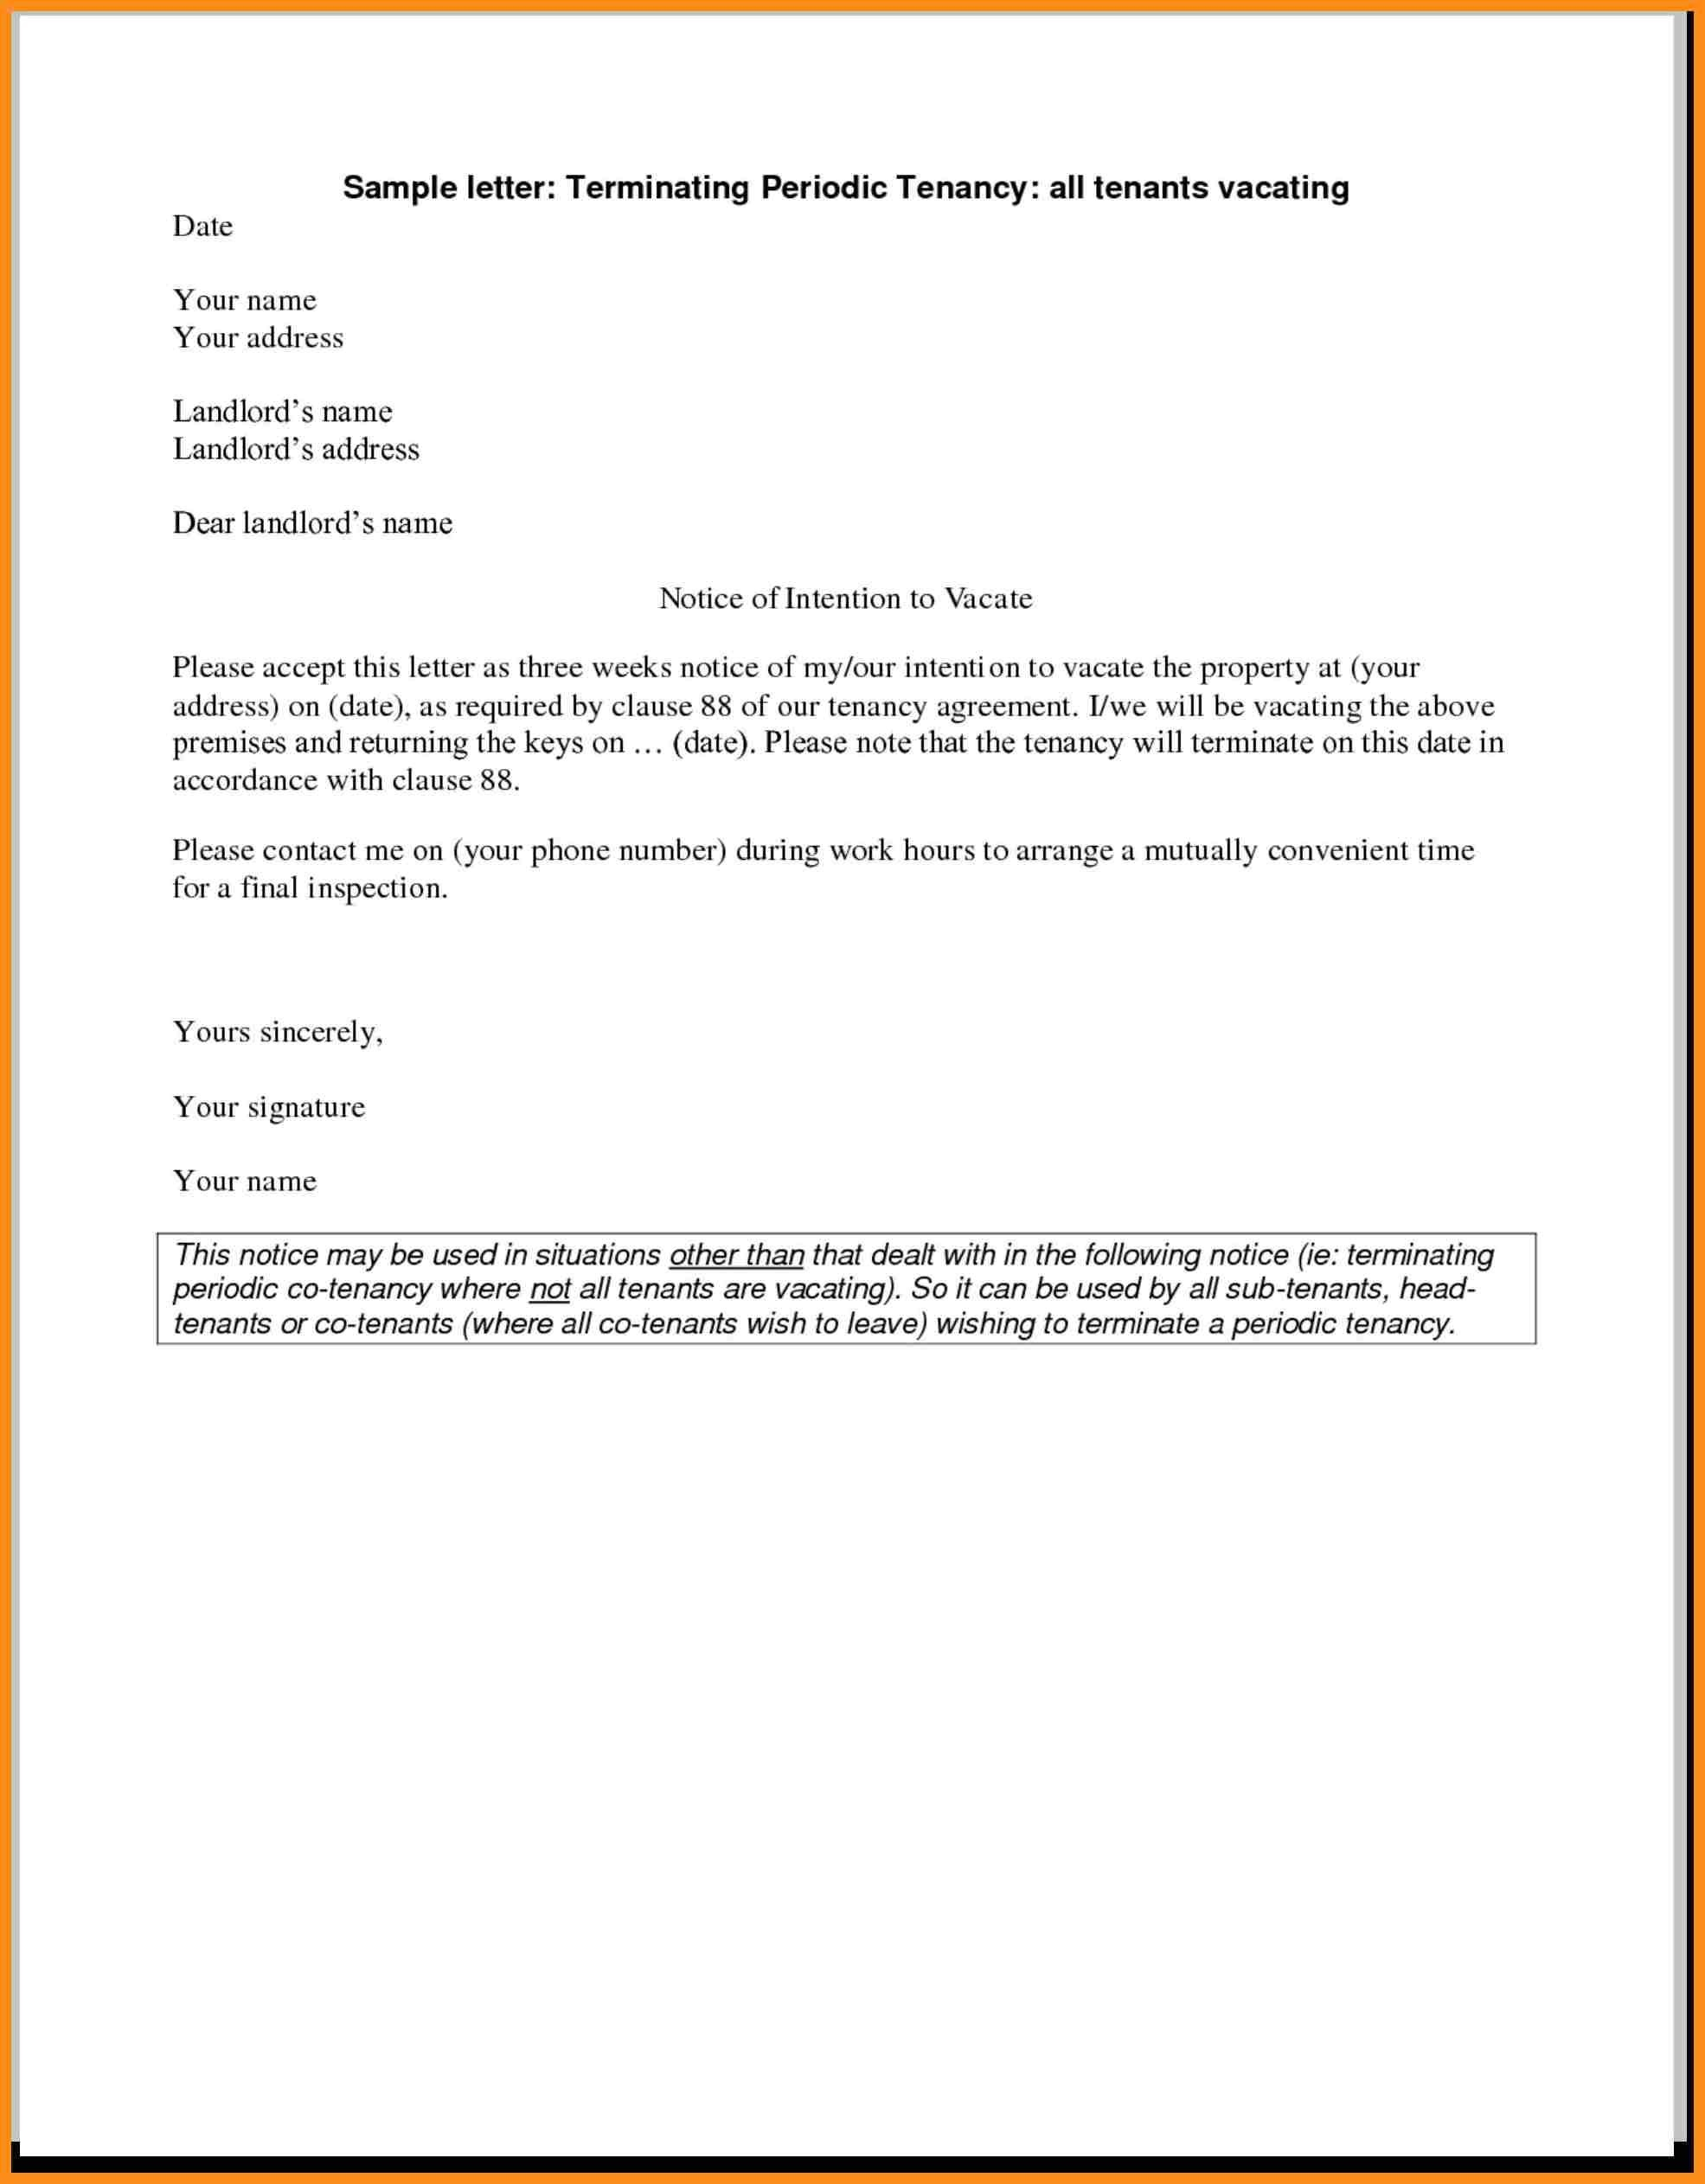 Landlord Property Inspection Letter Template - Property Inspection Letter to Tenant Uk Archives New Property